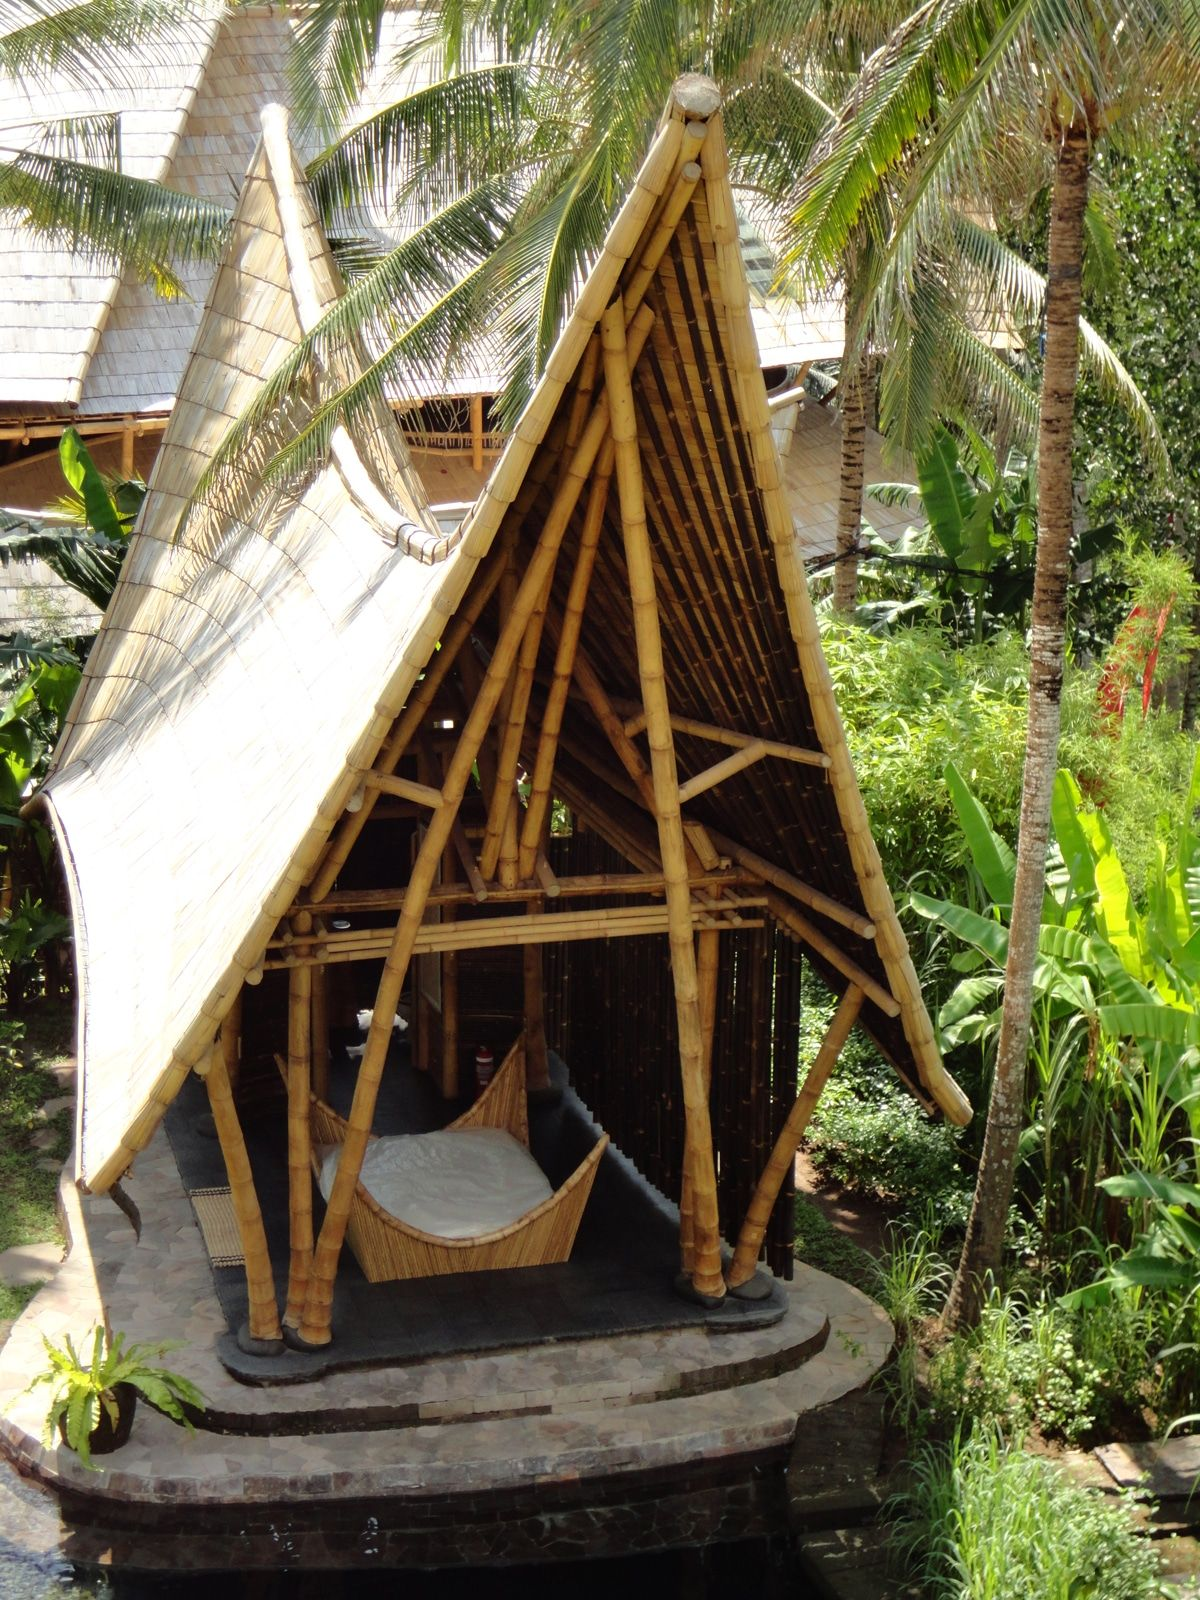 Bamboo Hut Structure